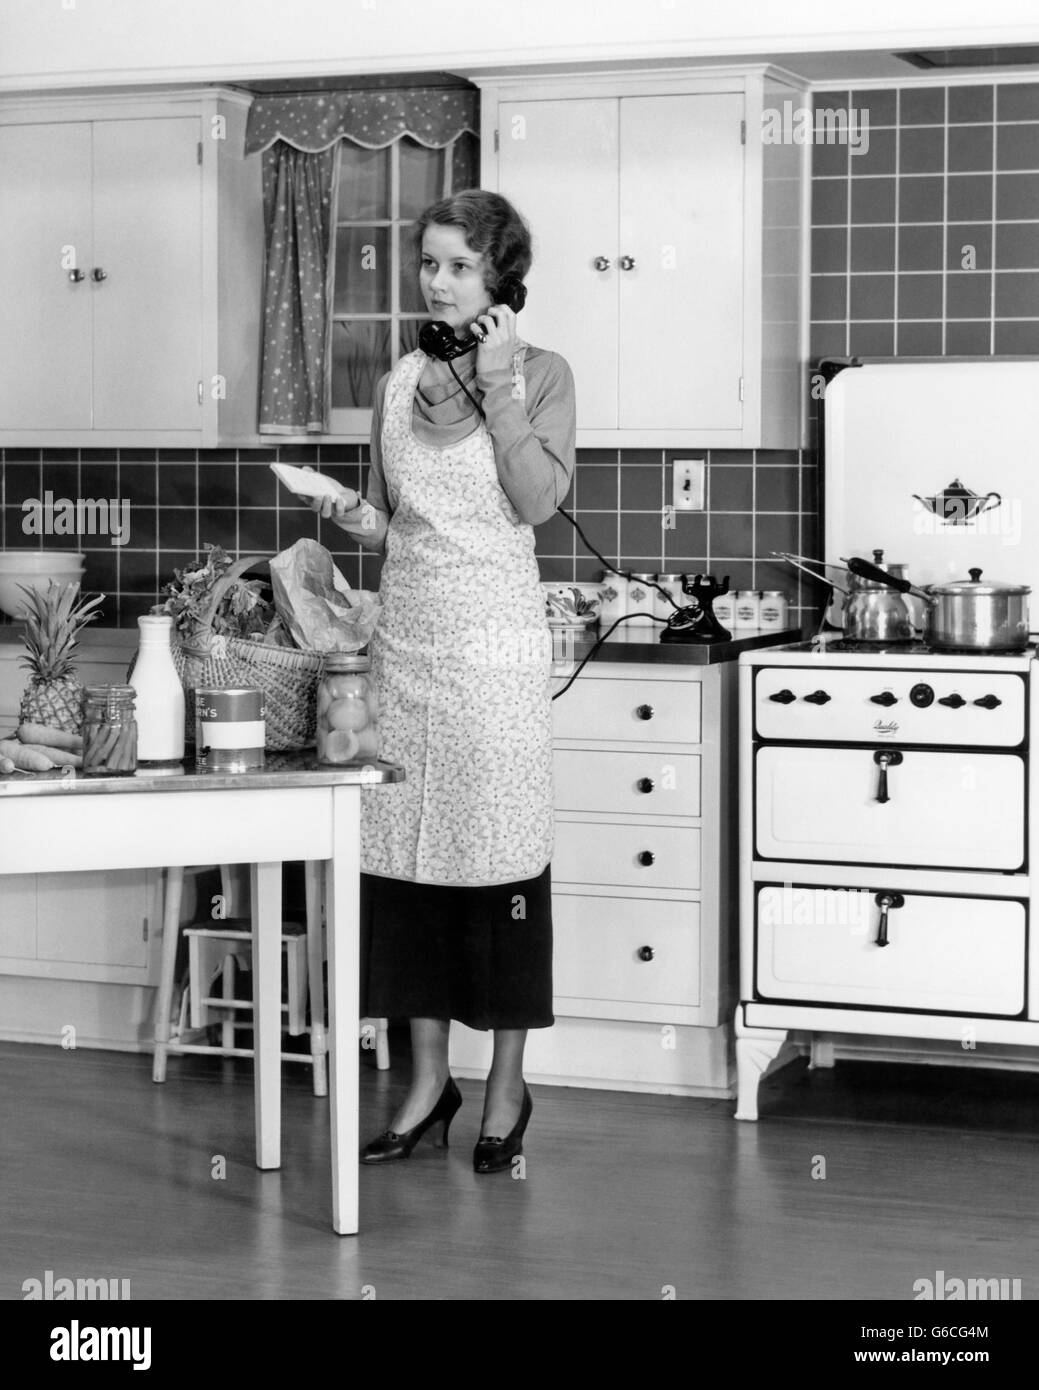 1930s WOMAN IN KITCHEN GROCERIES ON TABLE TALKING ON TELEPHONE - Stock Image